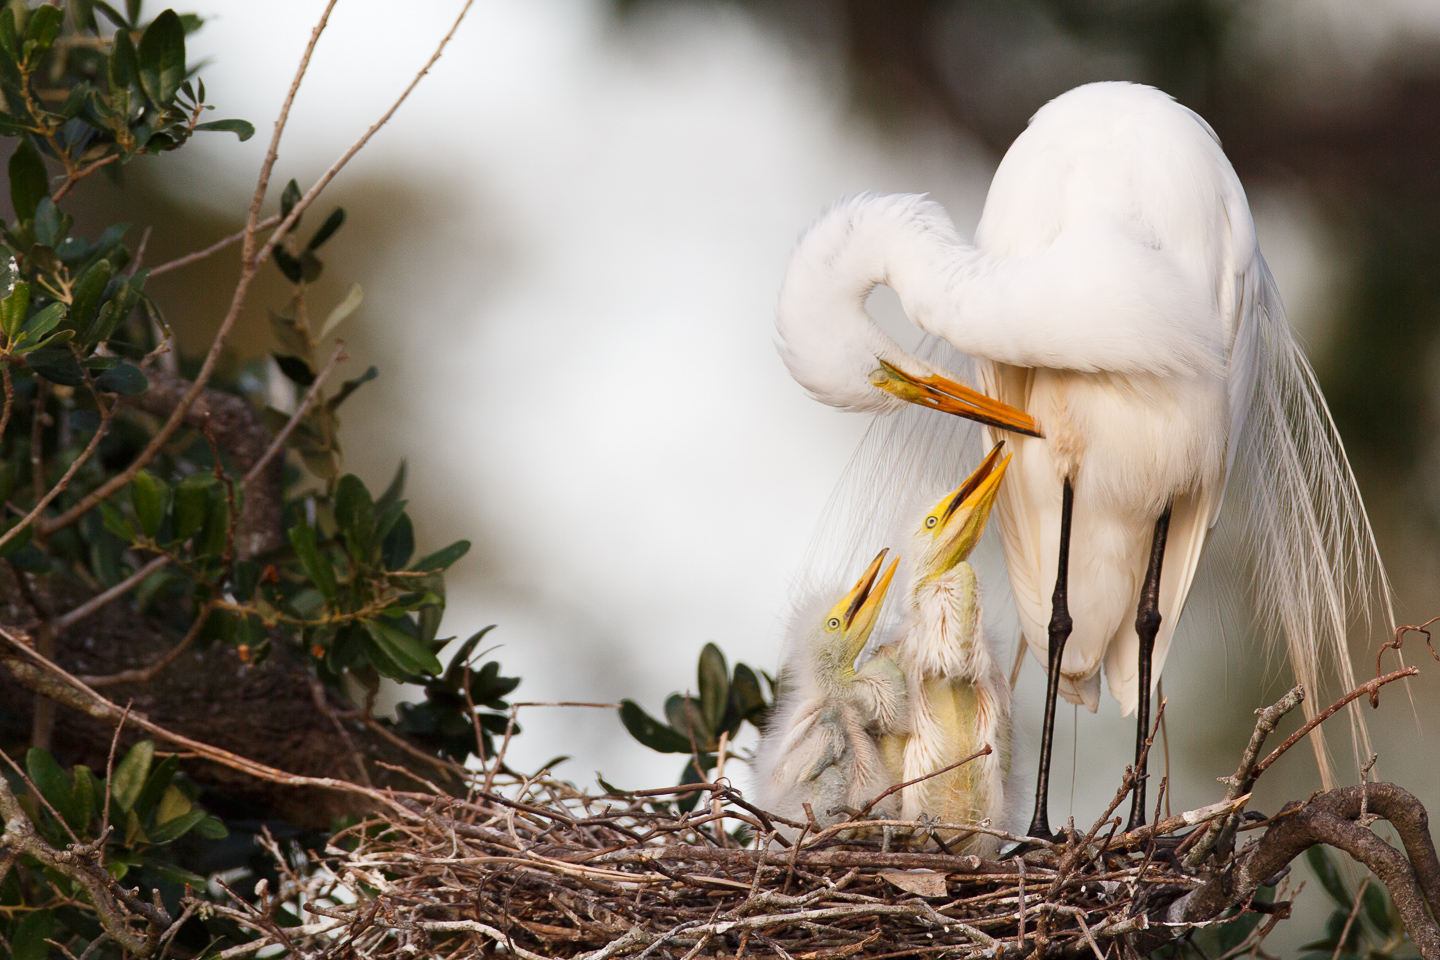 St Augustine, alligator farm, rookery, egret, nest, nestlings, preening, Florida, east coast, breeding season,